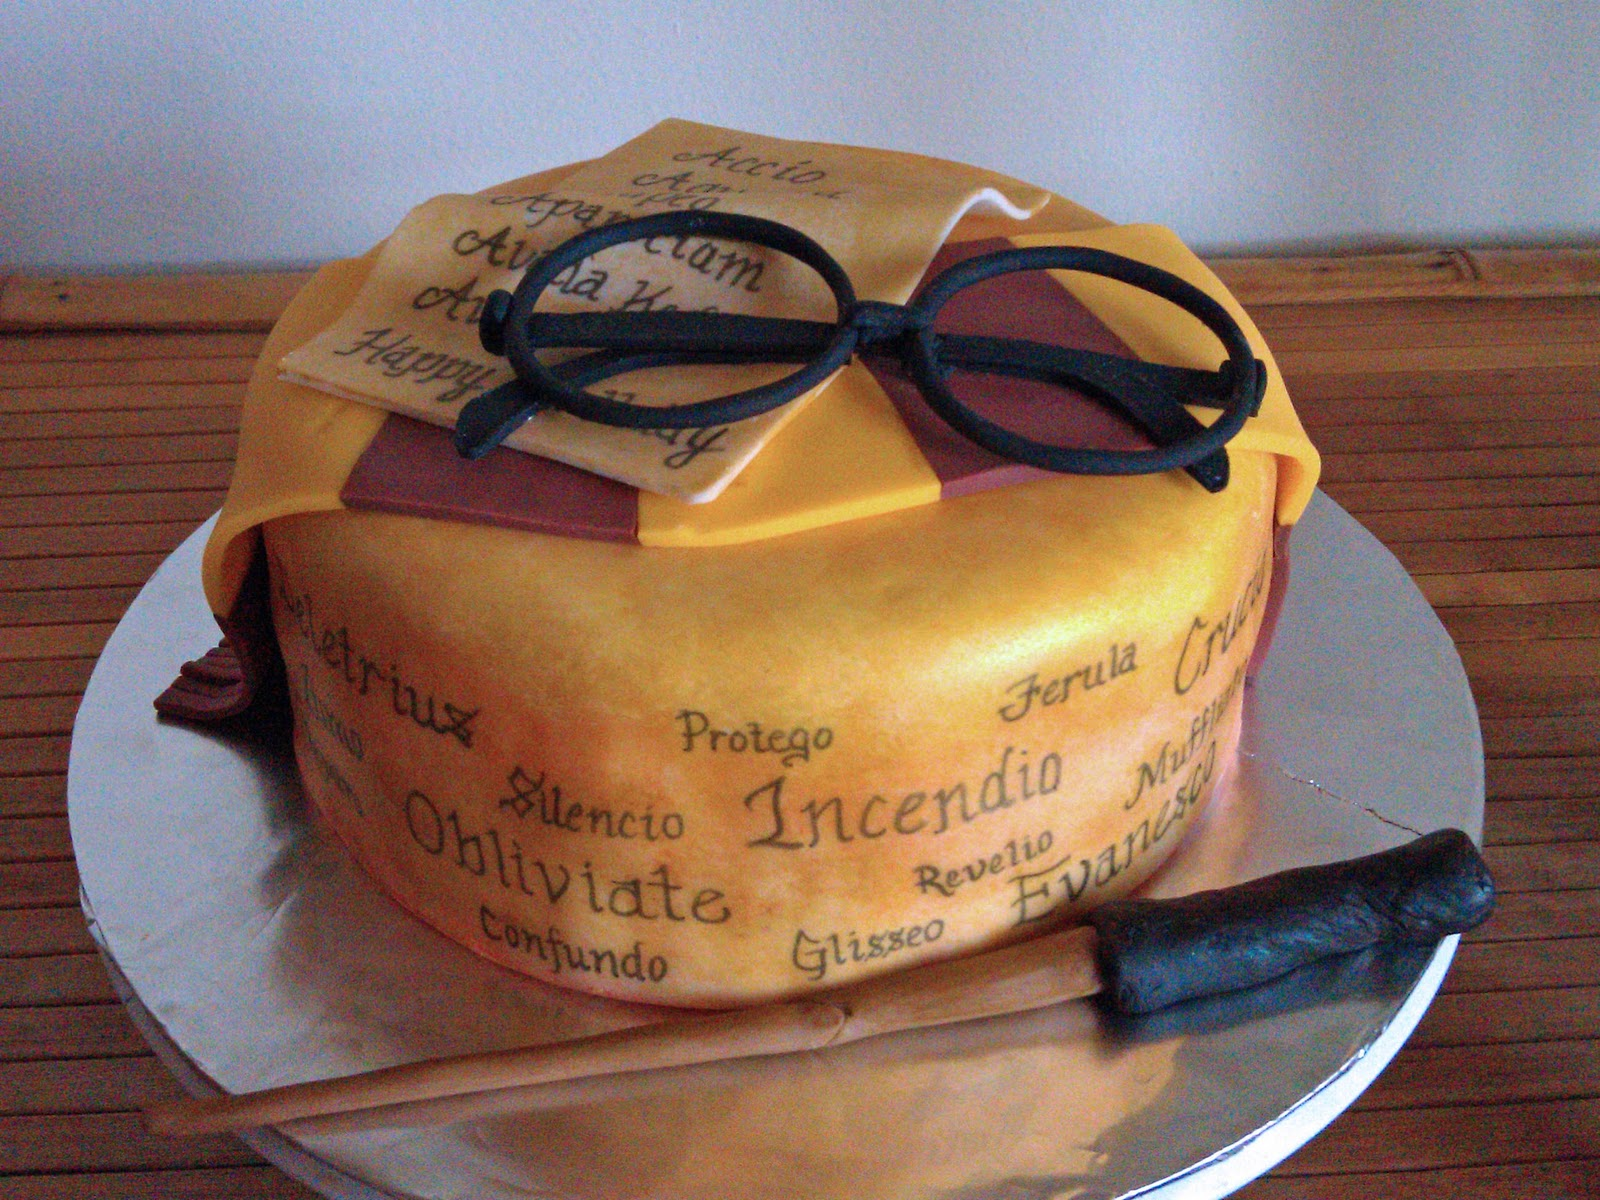 Lots of spells around the cake i have no recollection of the